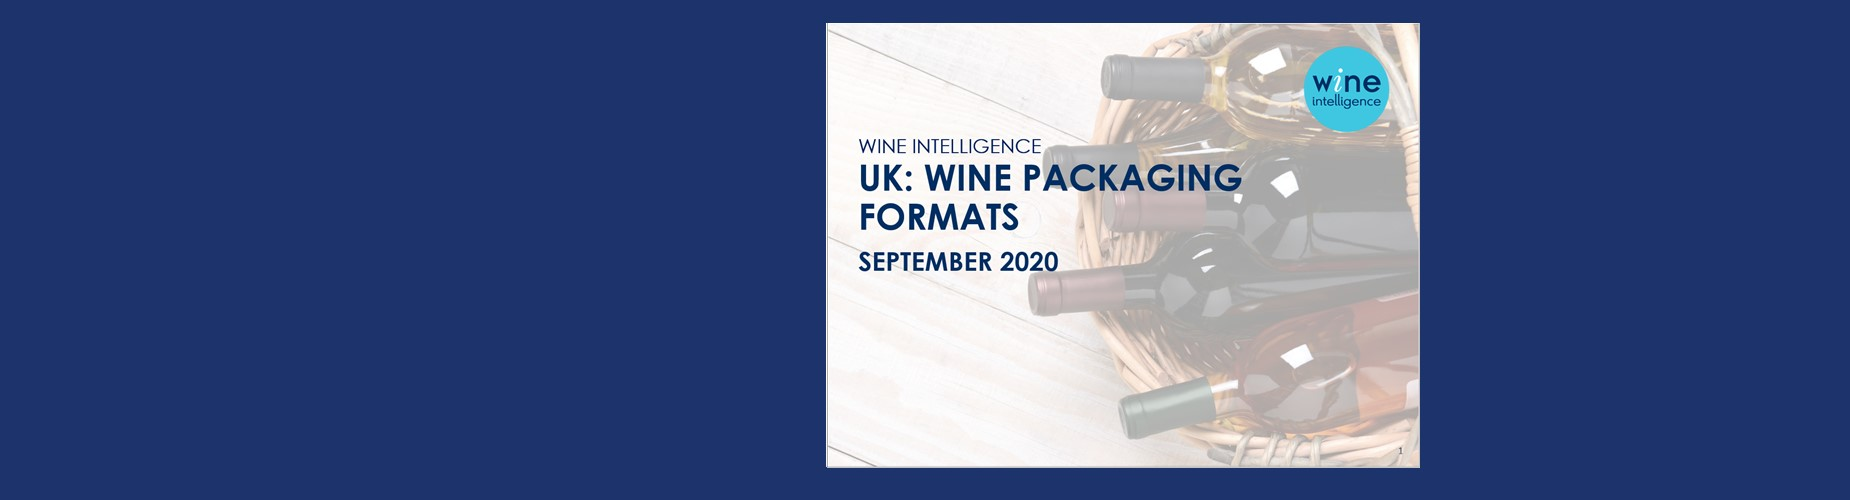 uk packaging 2020 - About reports shop